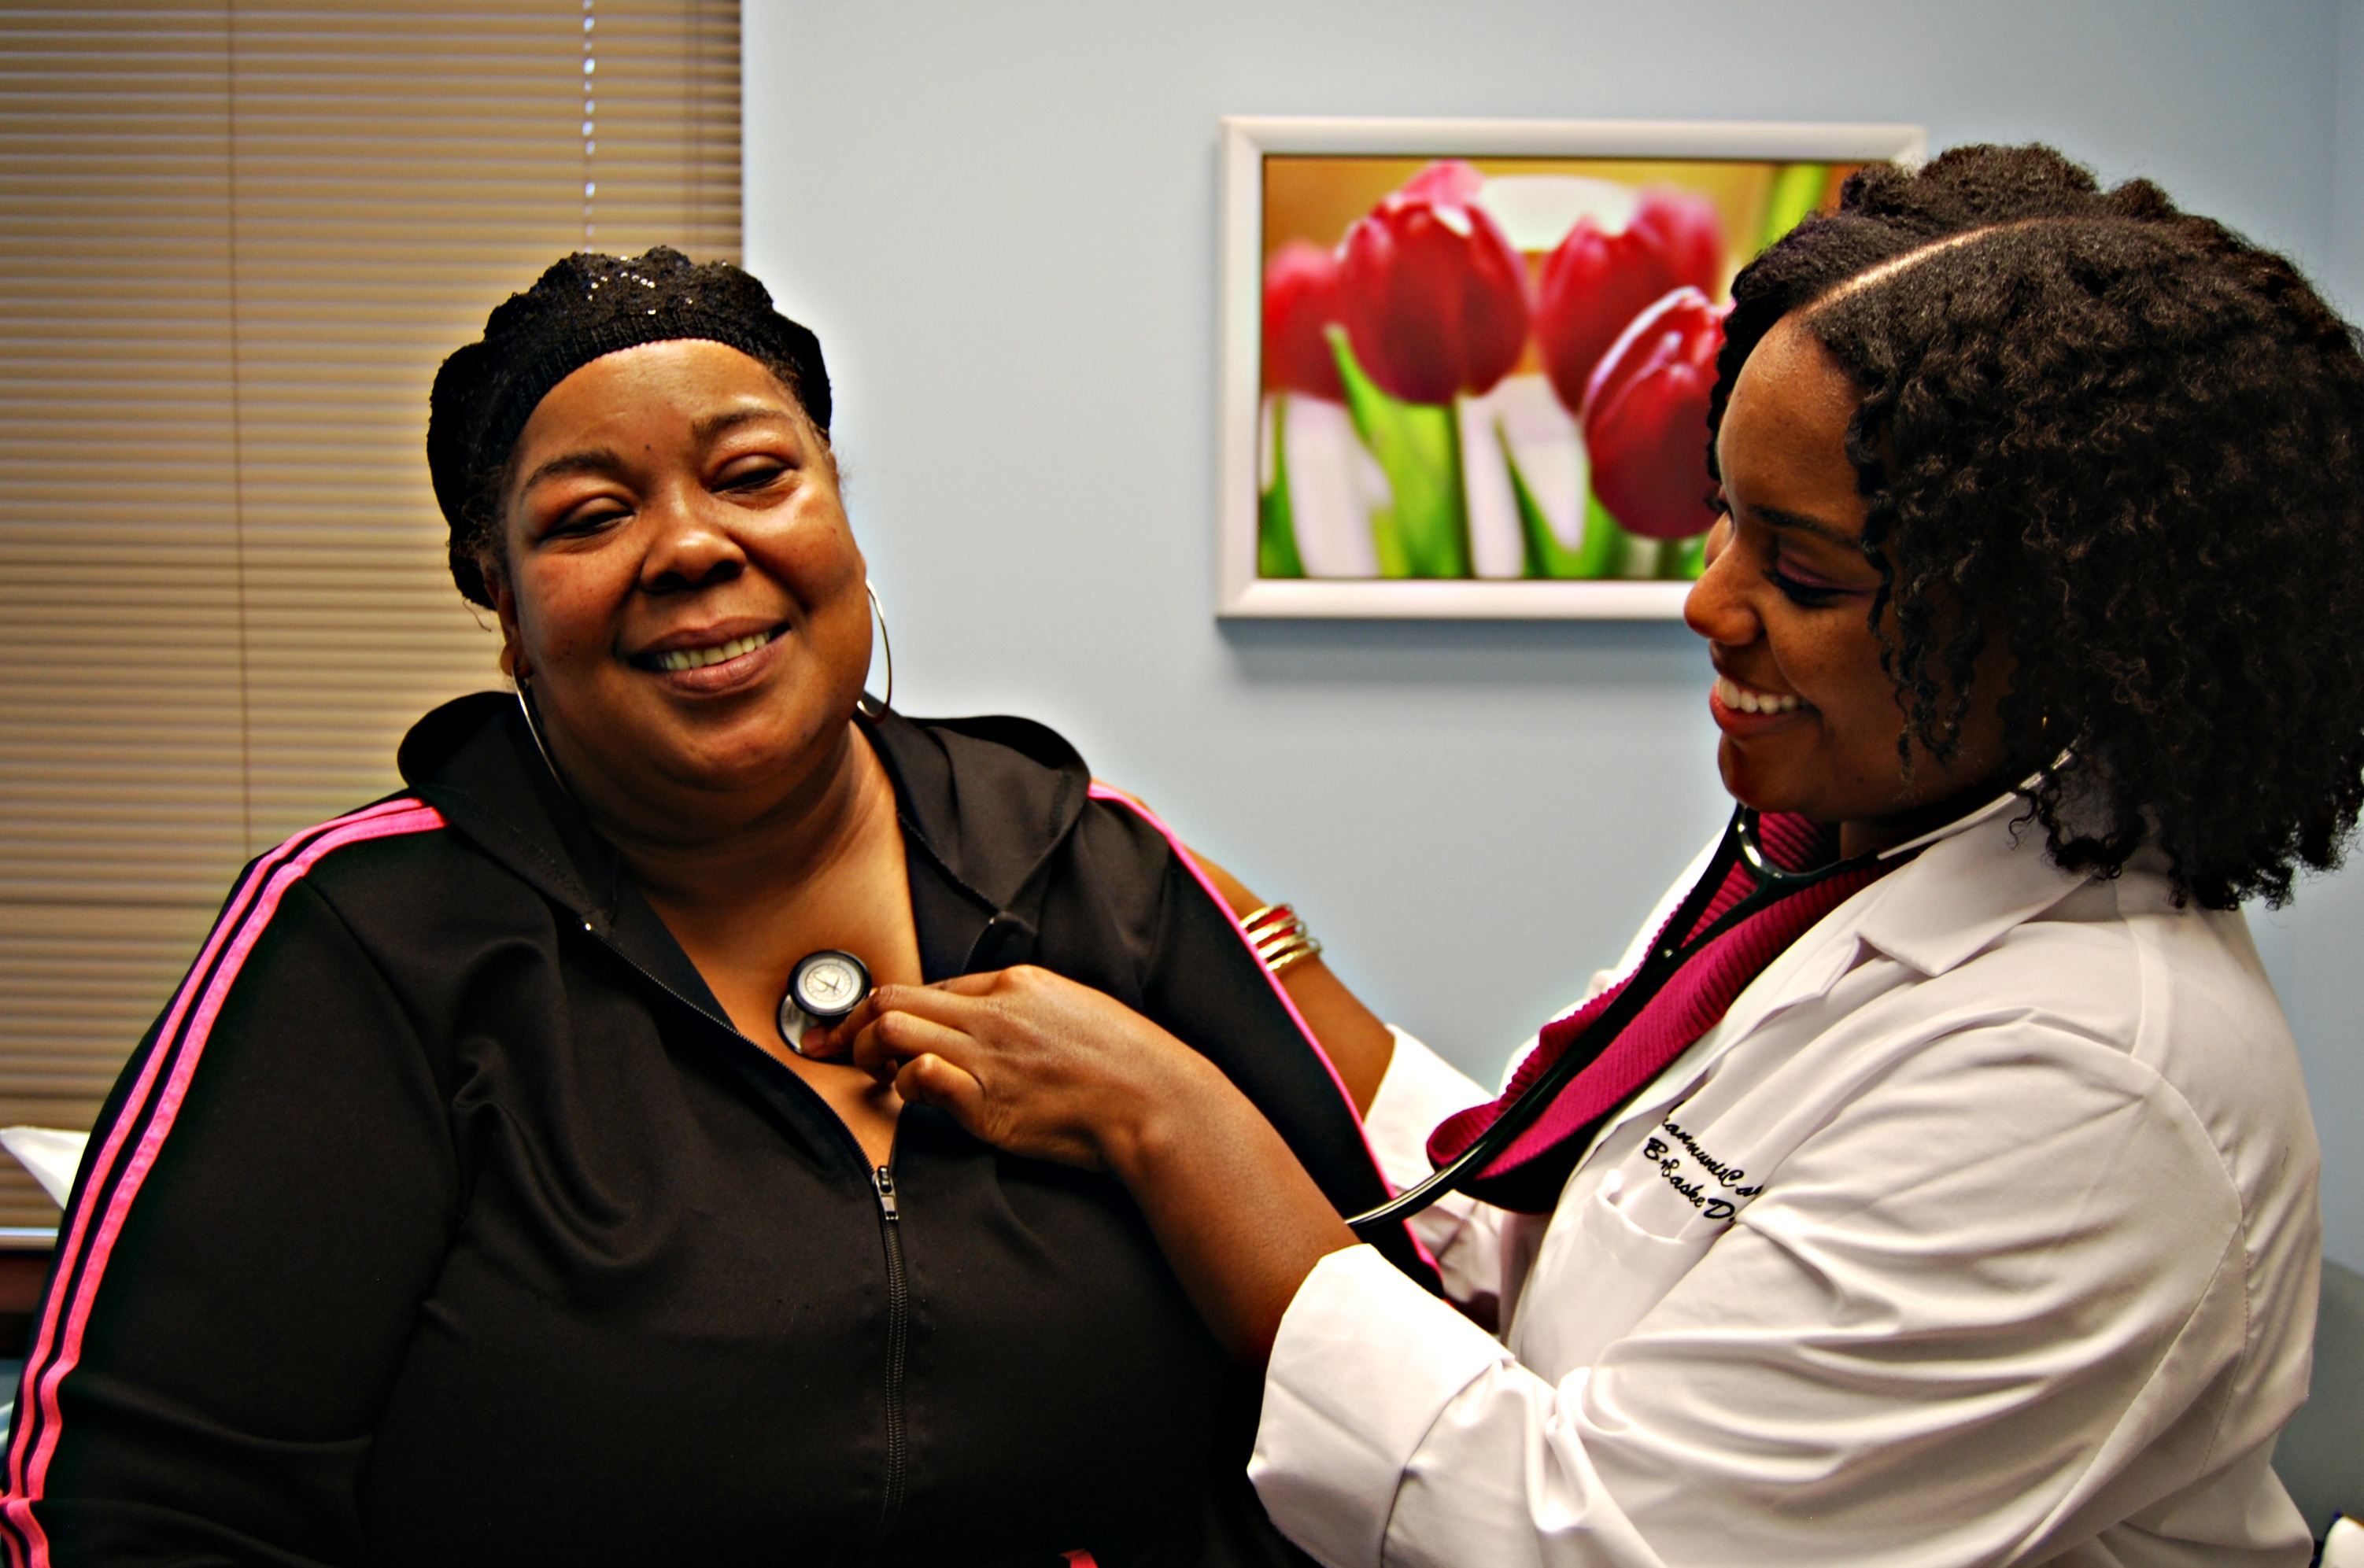 A patient receives care at Covenant. Courtesy photo.